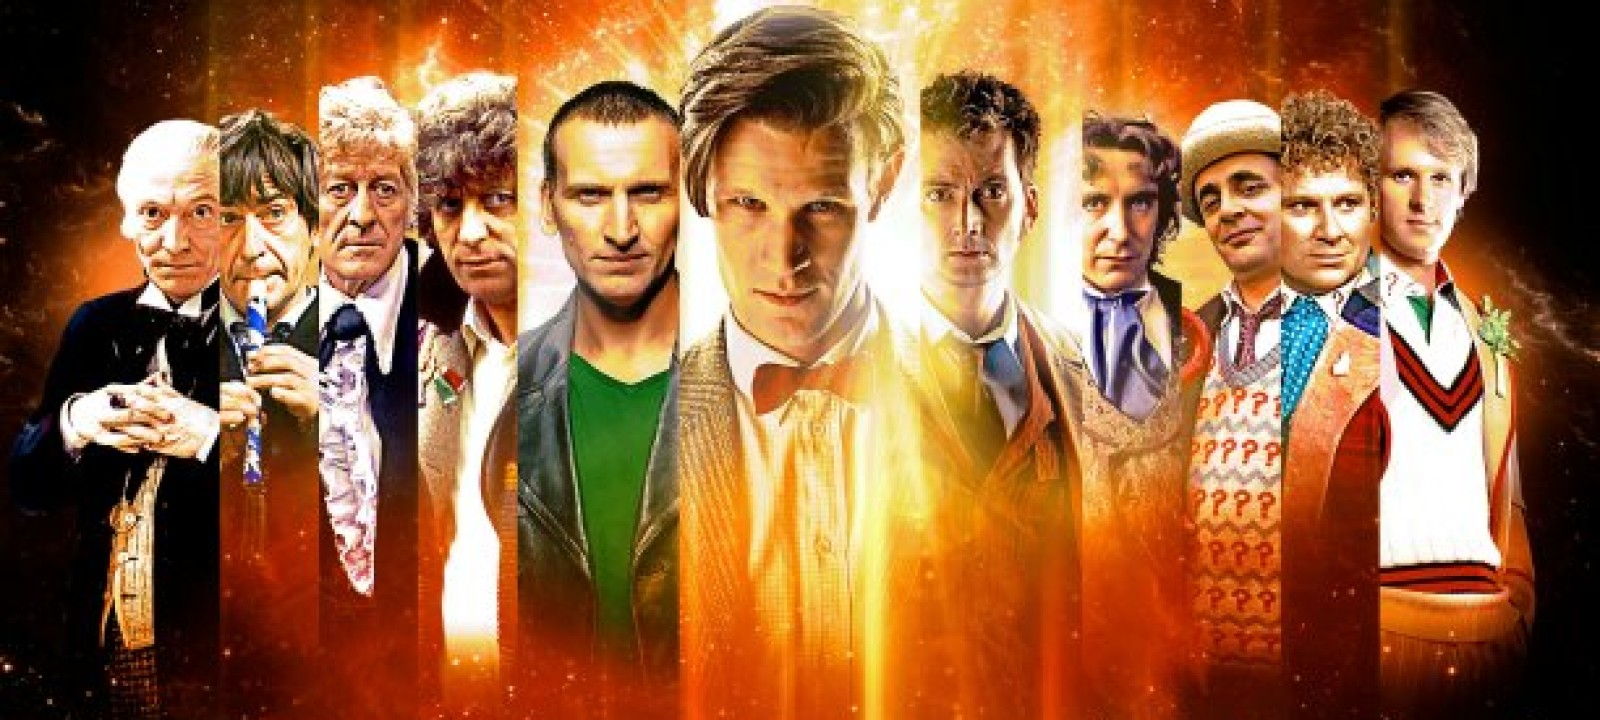 Doctor Who Watch Online